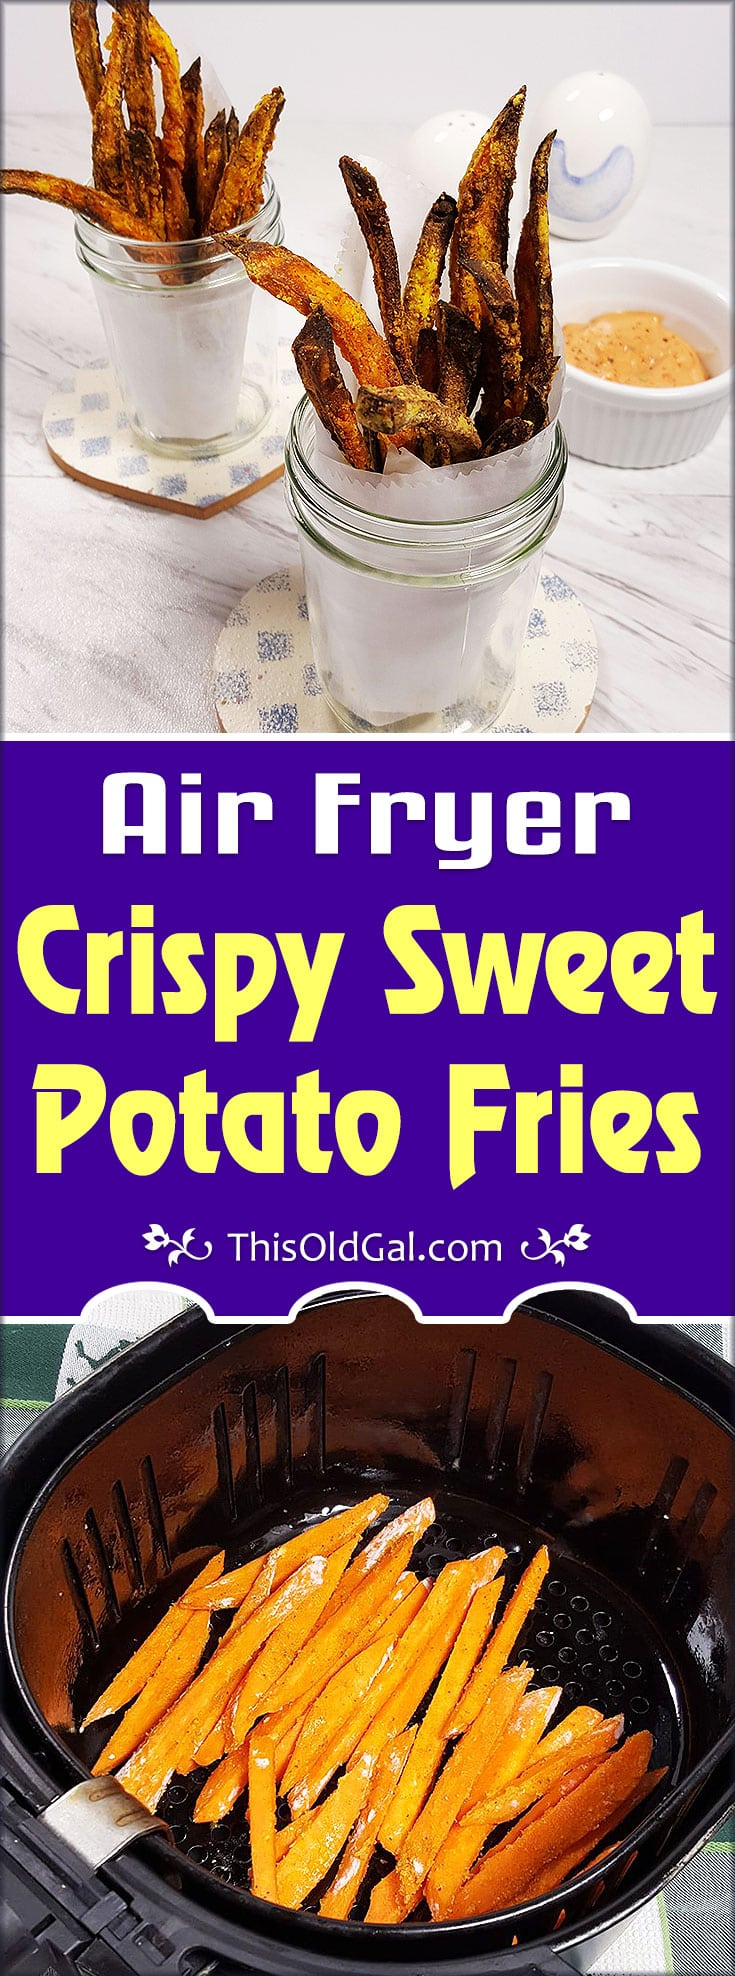 Easy Air Fryer Crispy Sweet Potato Fries